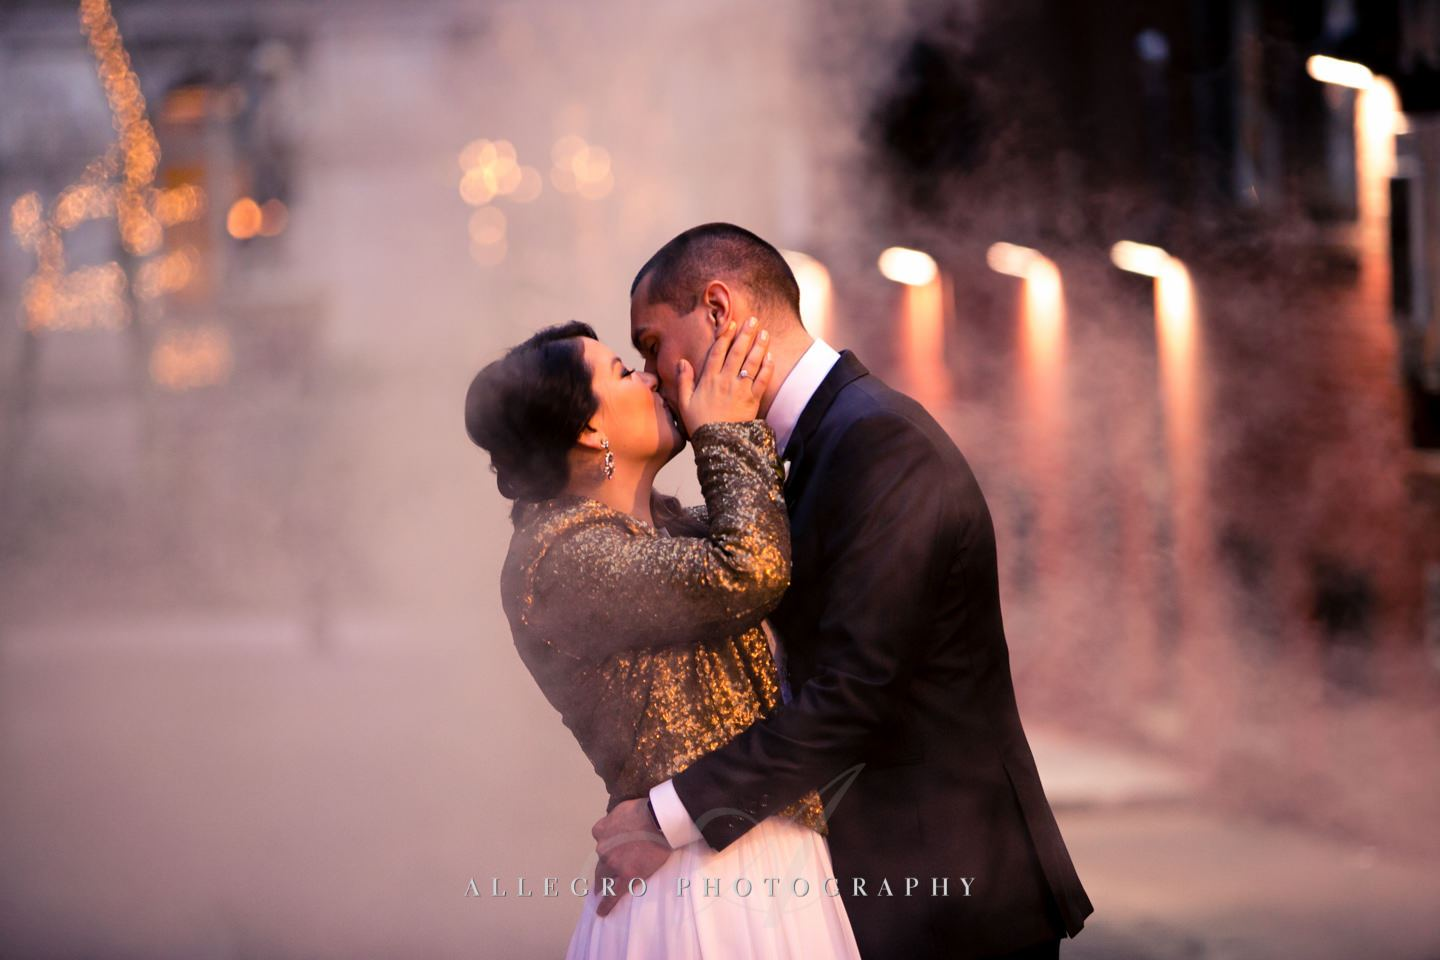 smokey bride and groom kiss in downtown boston -photo by Allegro Photography